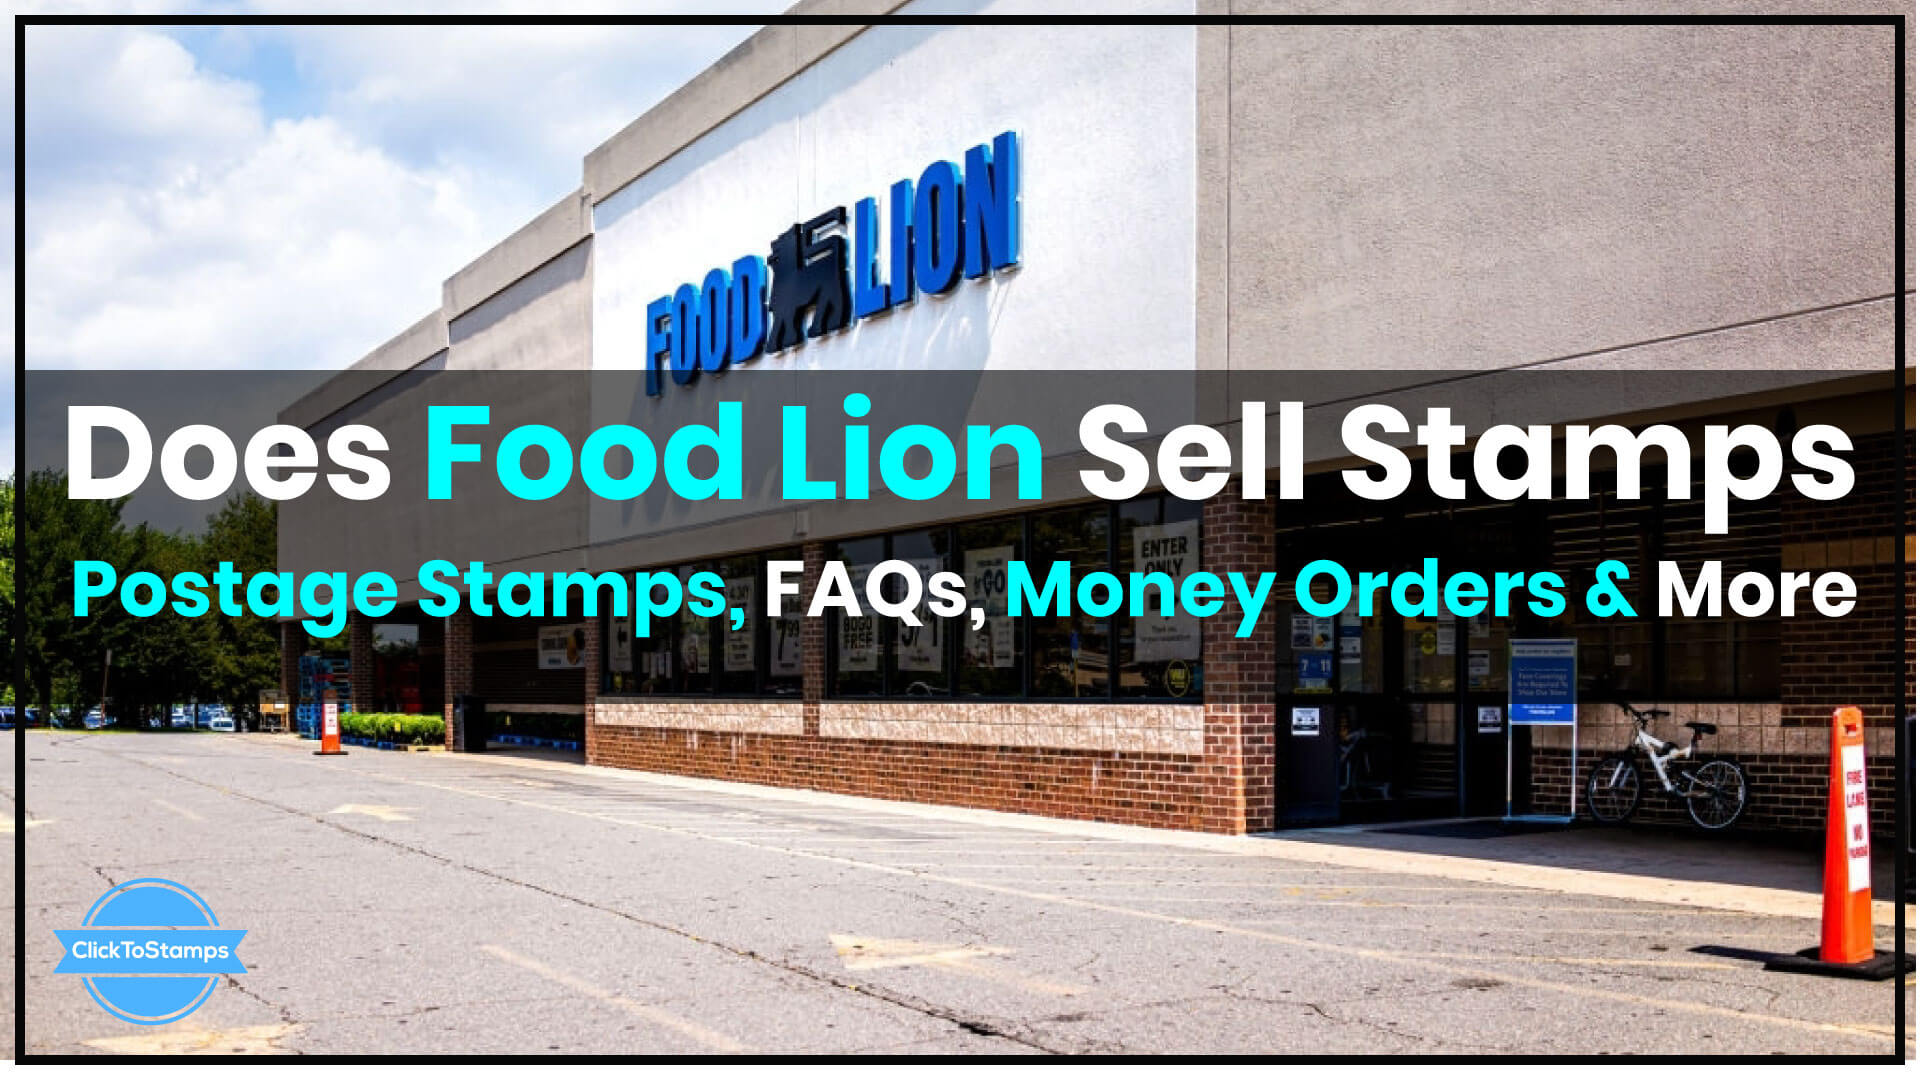 Does-Food-Lion-Sell-Stamps